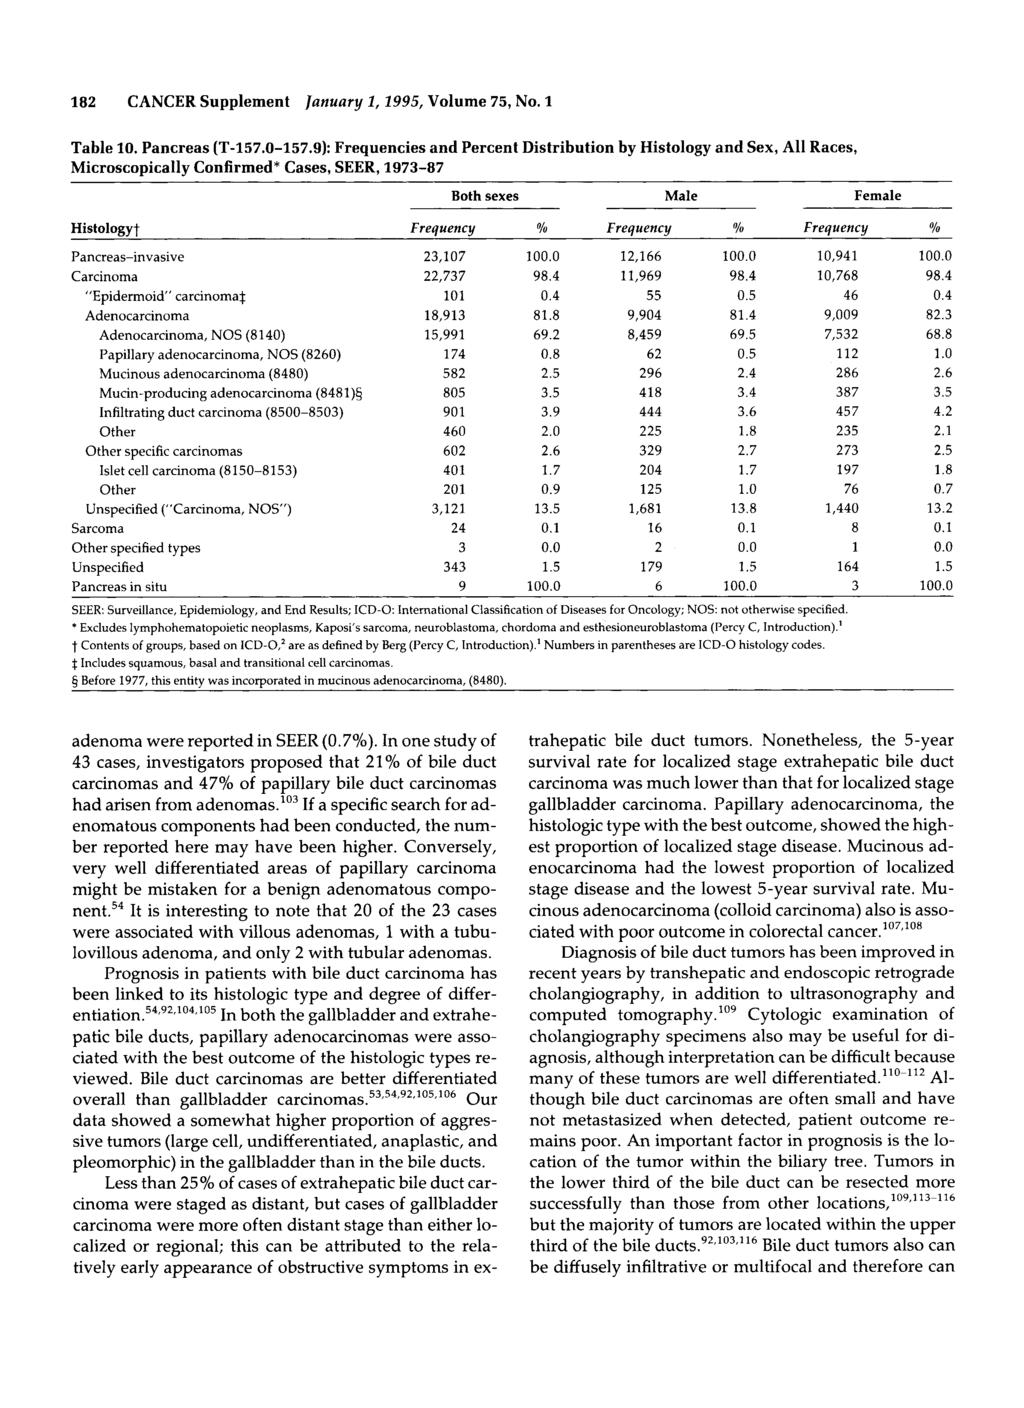 182 CANCER Supplement Juanuury 1,1995, Volume 75, No. 1 Table 10. Pancreas (T157.0157.